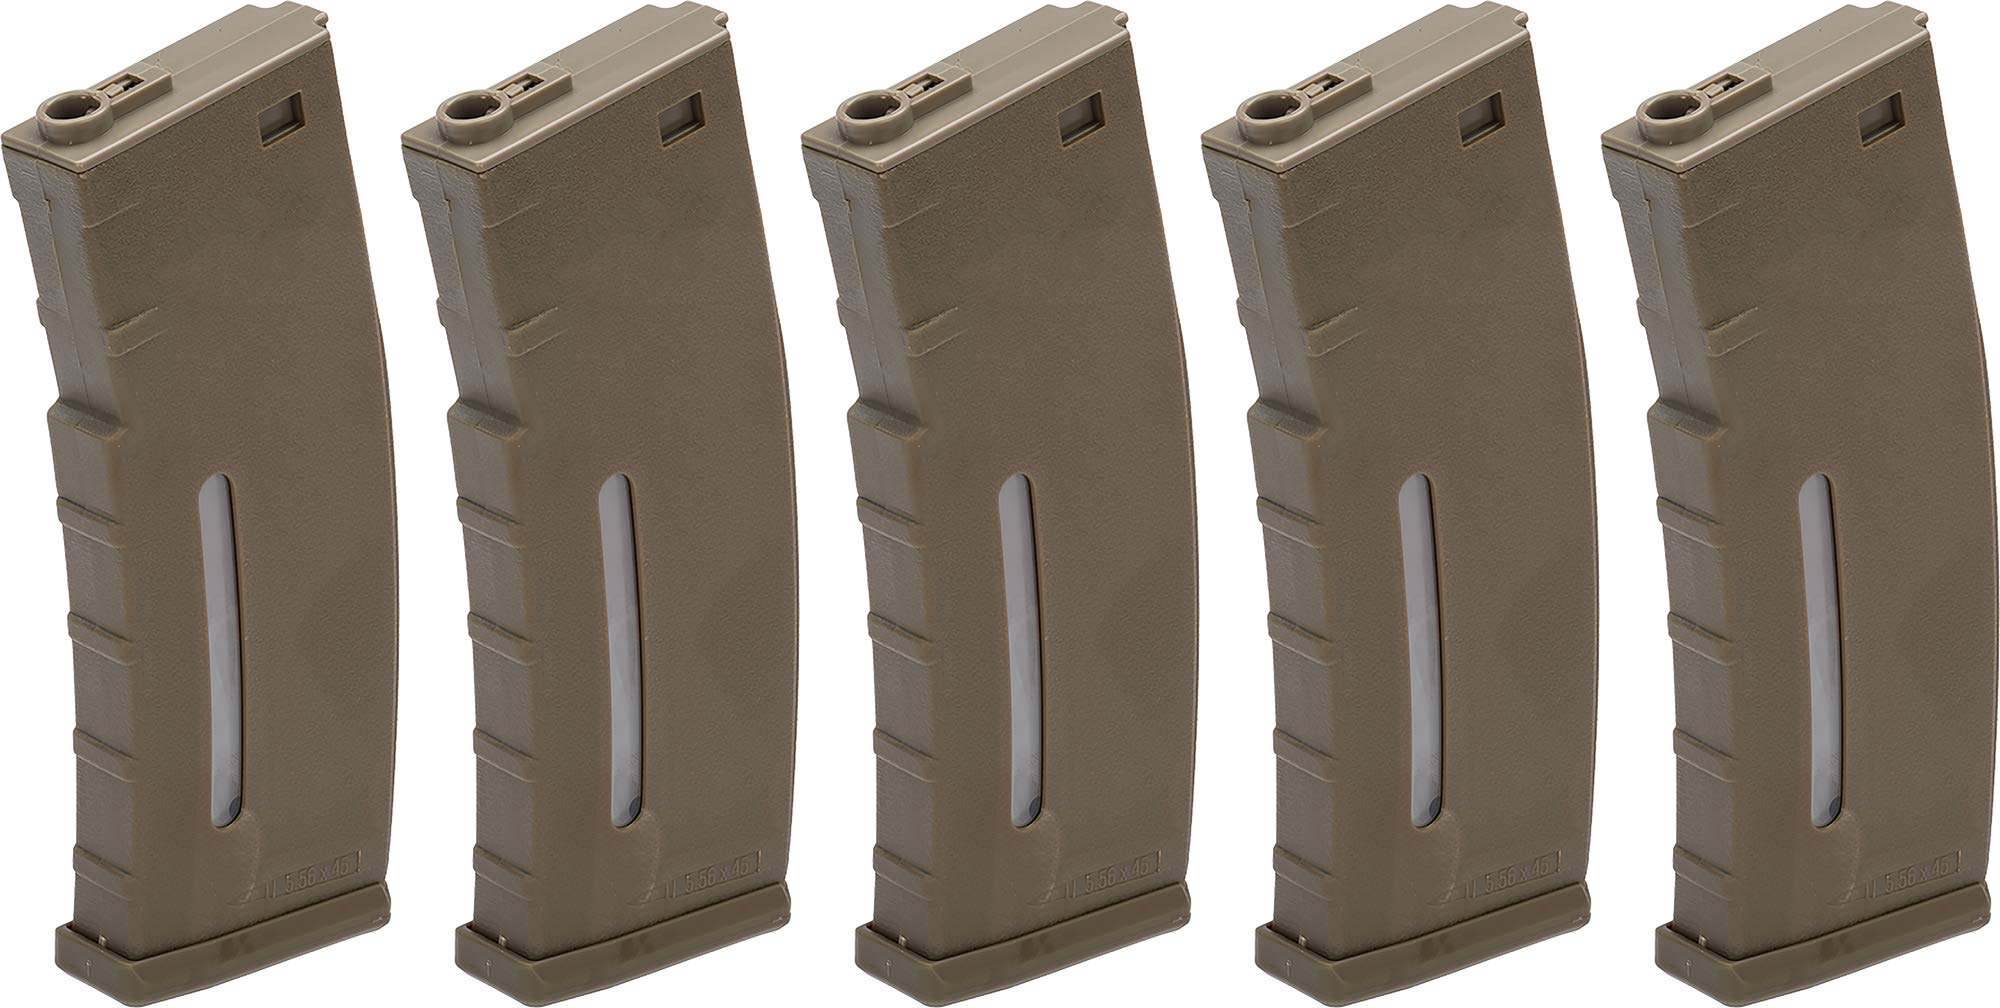 Evike BAMF 190rd Polymer Mid-Cap Airsoft Magazine for M4 / M16 Series AEG Rifles (Color: Tan / x5 Package) by Evike